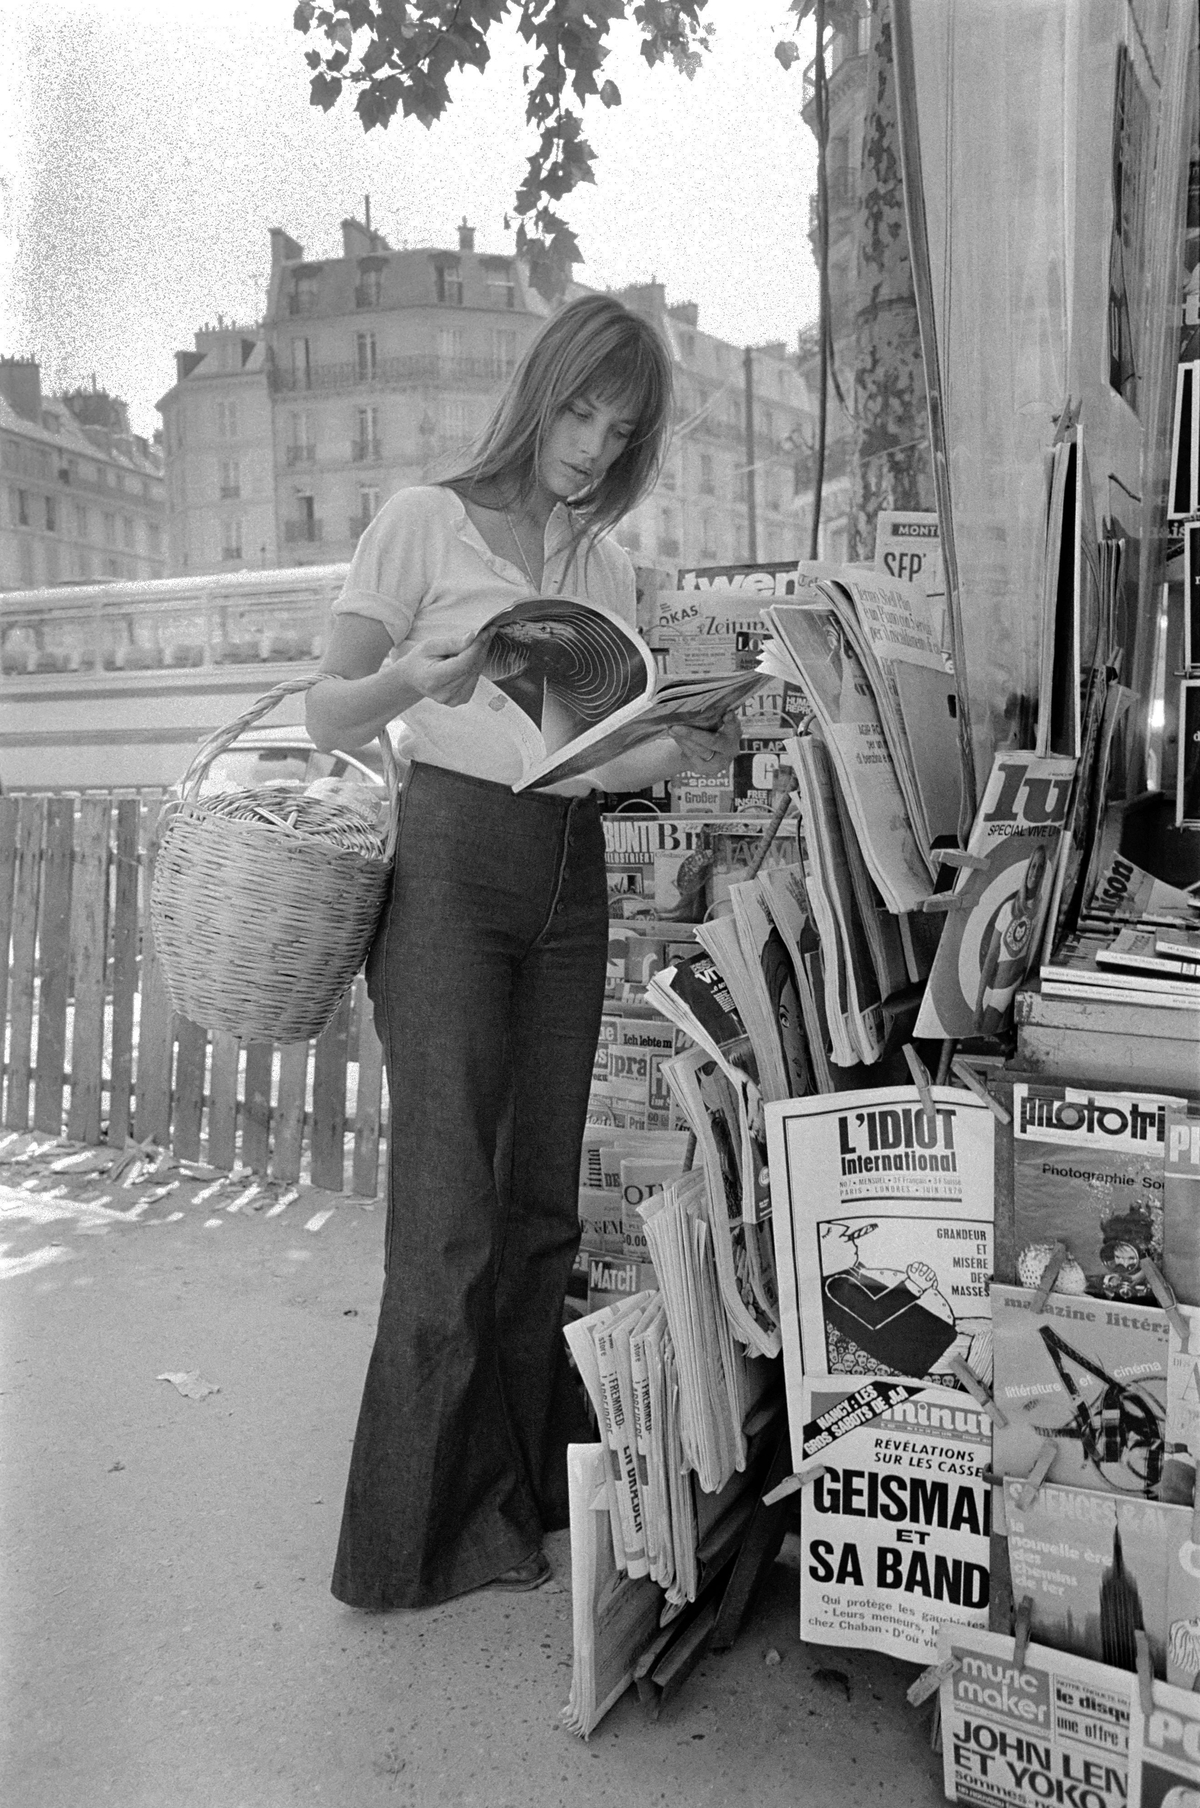 a-guide-to-cool-jane-birkin-photo-folkr-31